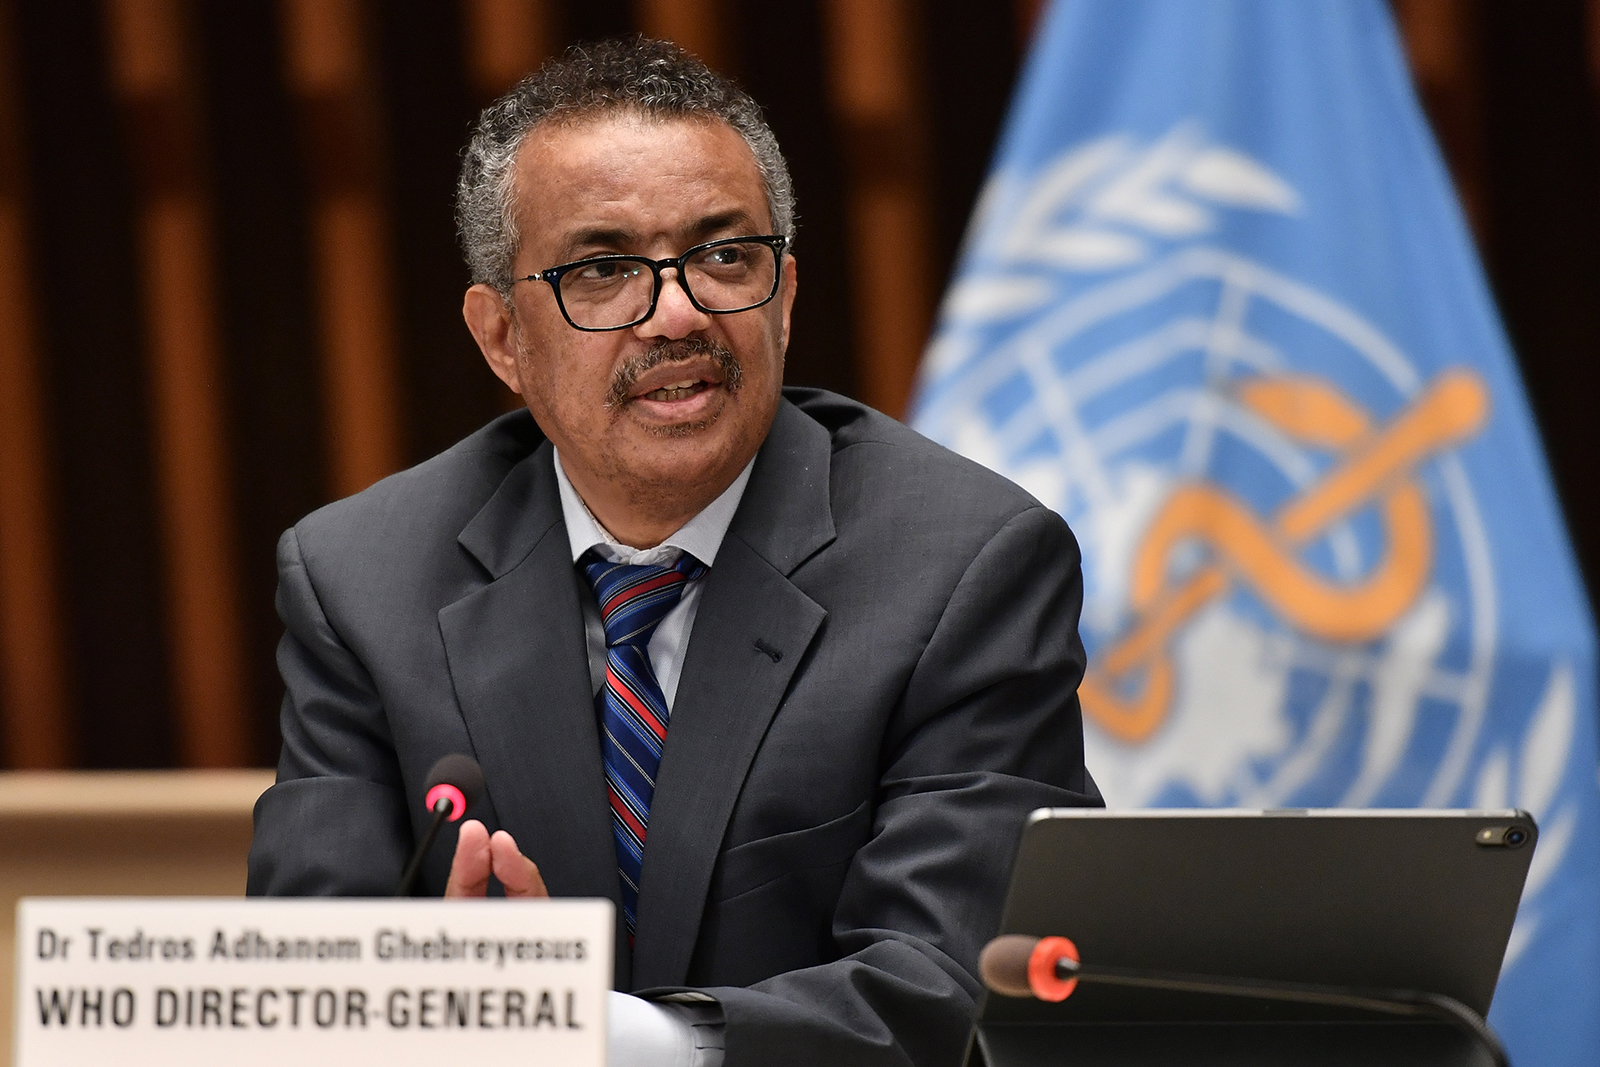 World Health Organization (WHO) Director-General Tedros Adhanom Ghebreyesus attends a press conference at the WHO headquarters in Geneva, Switzerland, on July 3.